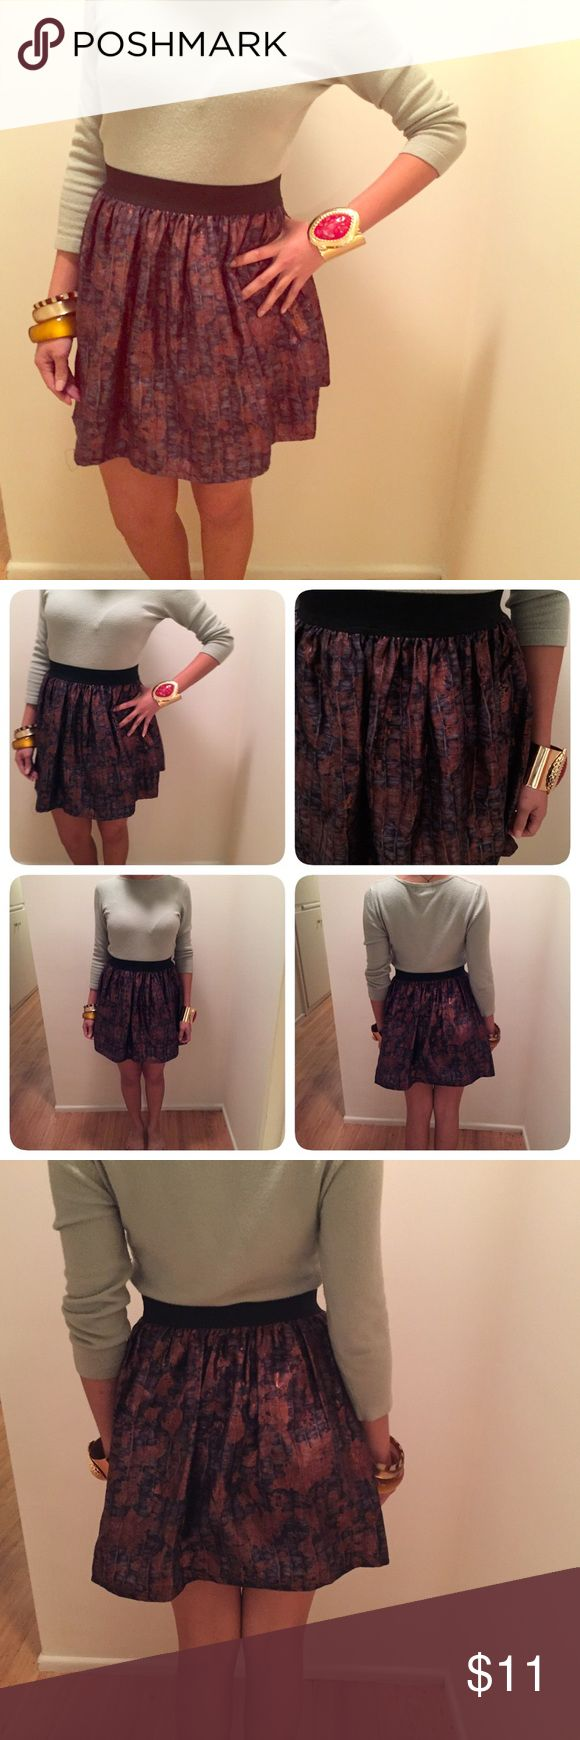 """[Forever 21]Bronze Vegan Suede Mini Bubble Skirt M This is a gorgeous forever 21 size medium vegan suede snake skin bubble mini skirt. Lined inside. Elastic waistband for extra comfort. Waistband stretches. Length 17"""" & waist up to 33."""" Multi colors. Forever 21 Skirts Circle & Skater"""